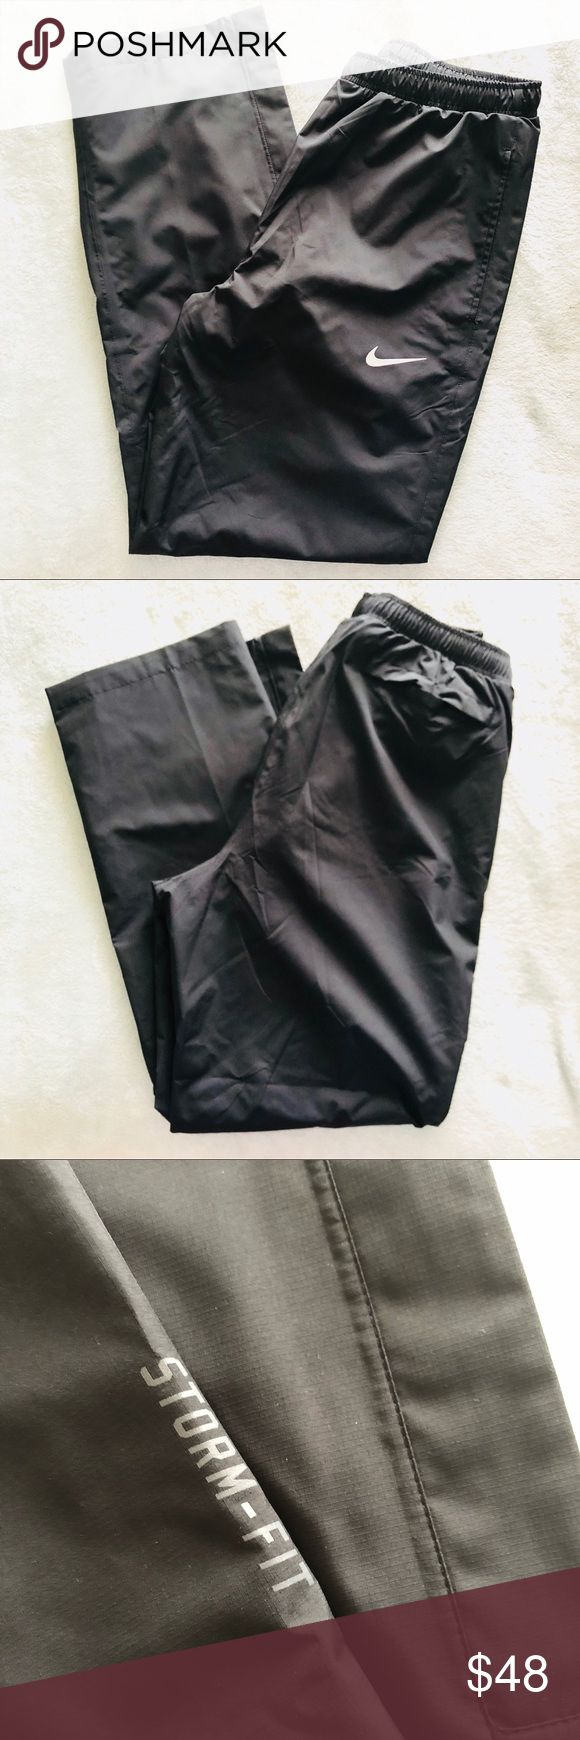 { NIKE } Golf Rain Pants Size Medium. Pants only. Preowned like new condition.  The Nike HyperShield Men's Golf Rain Suit help you stay dry when the weather turns. HyperShield fabric blocks wind and rain to help keep you dry and comfortable. DWR (durable, water-repellent) finish and sealed seams protect from light wind and rain. Zip hems enable easy on and off. Elastic waist on pants with drawcord for a custom fit. Mesh-lined pants for breathable comfort. Fabric: 100% polyester. Machine…